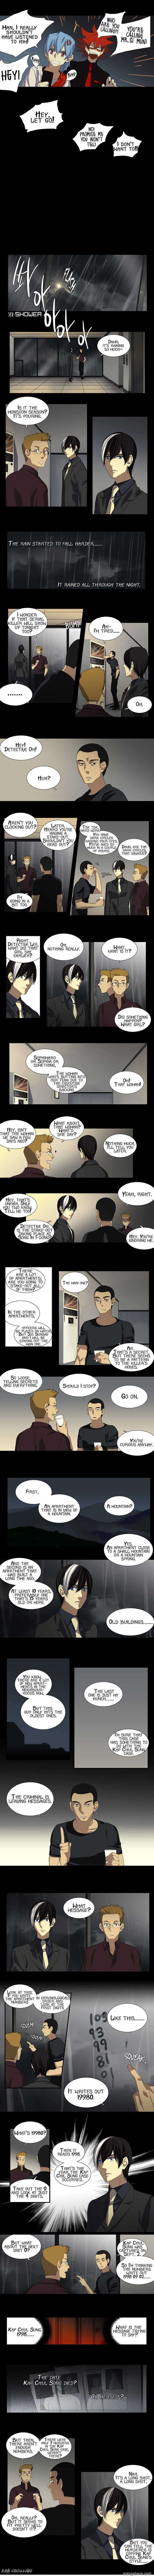 Supernatural Investigation Department 26 Page 2